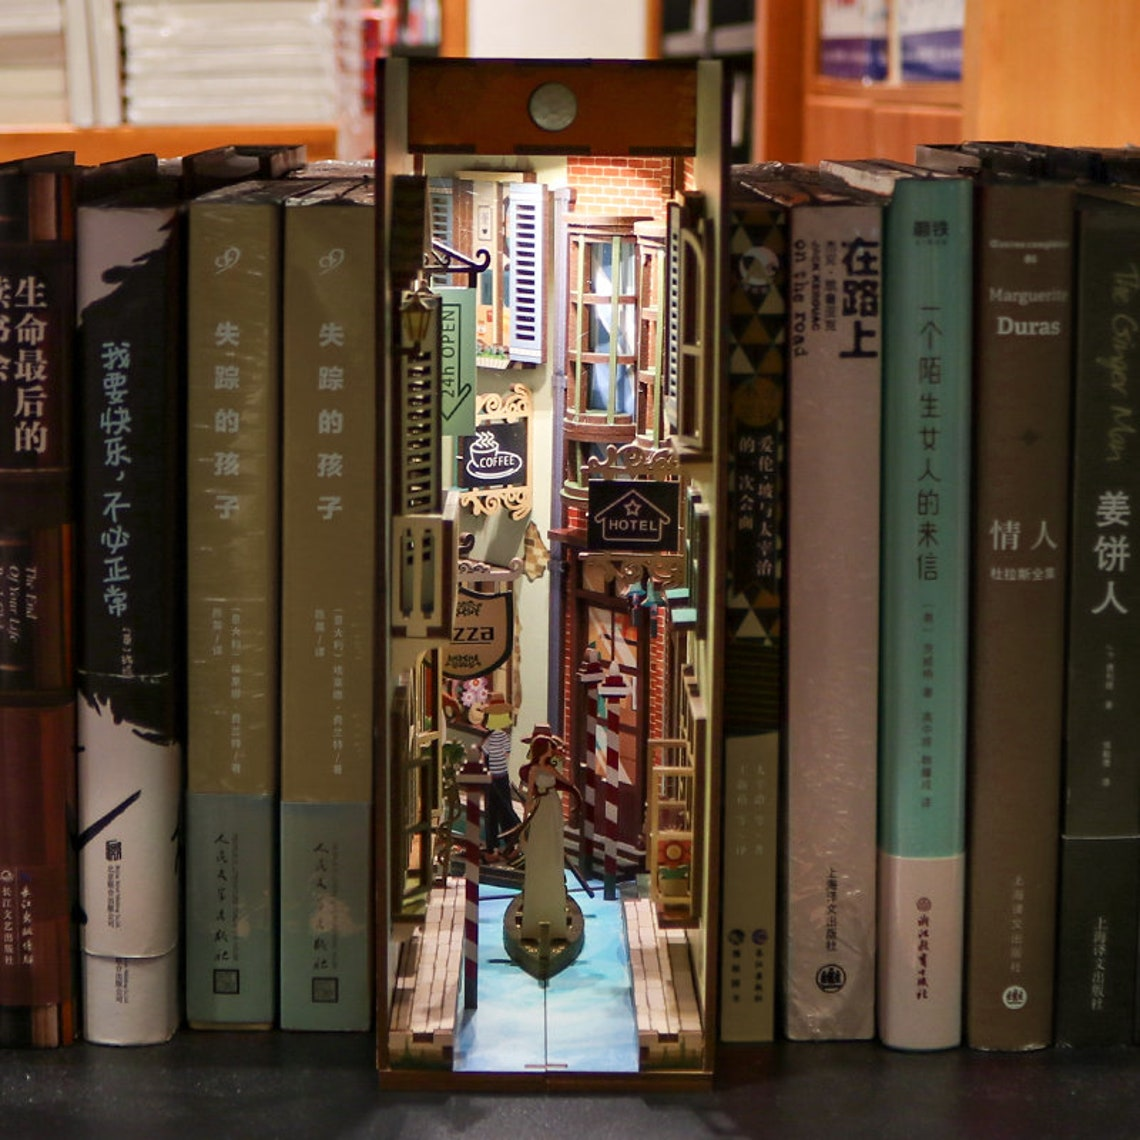 Travel in Venice, Italy Book Nook - Book Shelf Insert - Bookcase with Light Model Building Kit